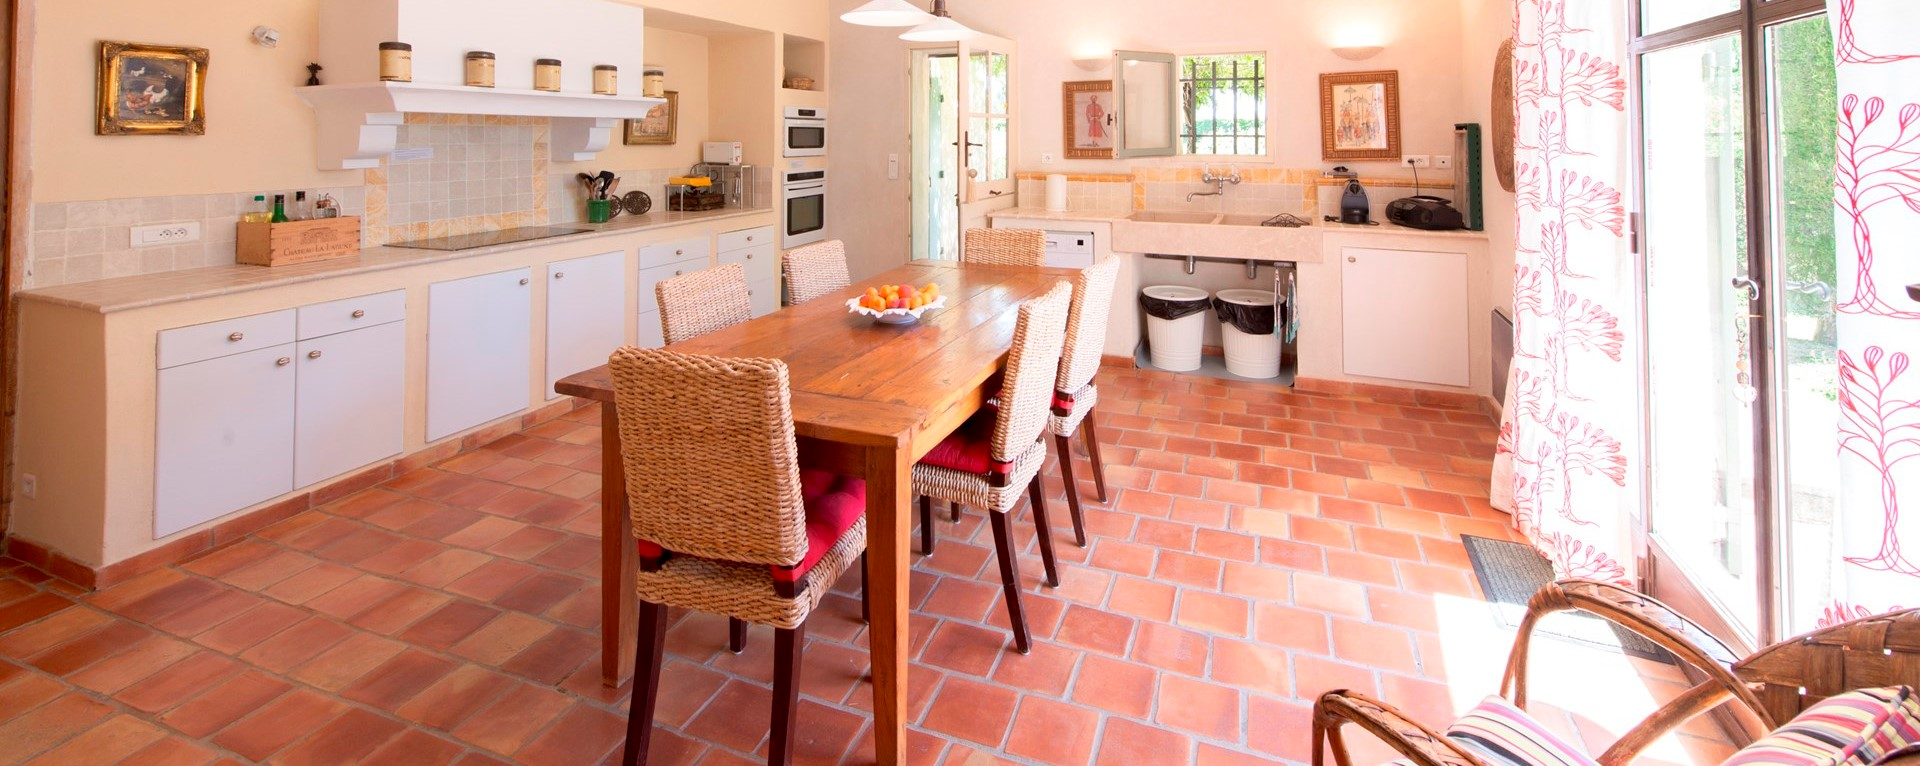 villa-isabelle-kitchen-dining